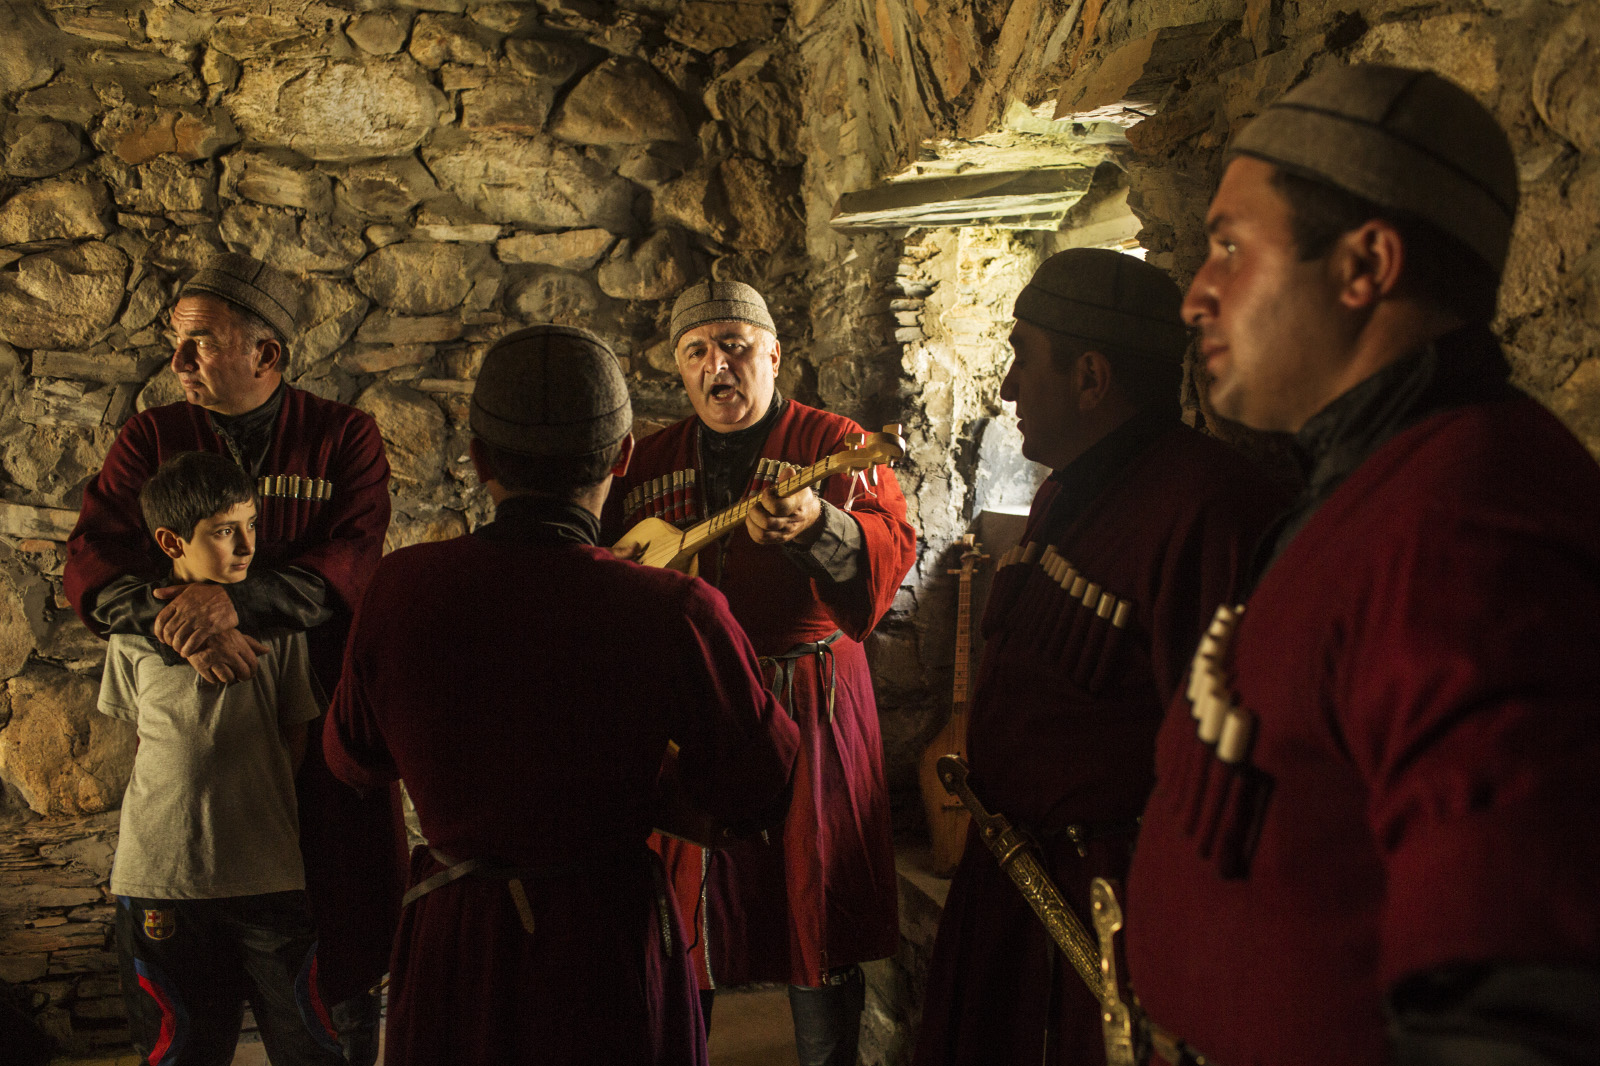 The {quote}Rhio{quote} mens choir prepares (and takes breaks) from a performance to honor a famous Svaish mountaineer who returned home from an expedition, Mestia, Svanetia.